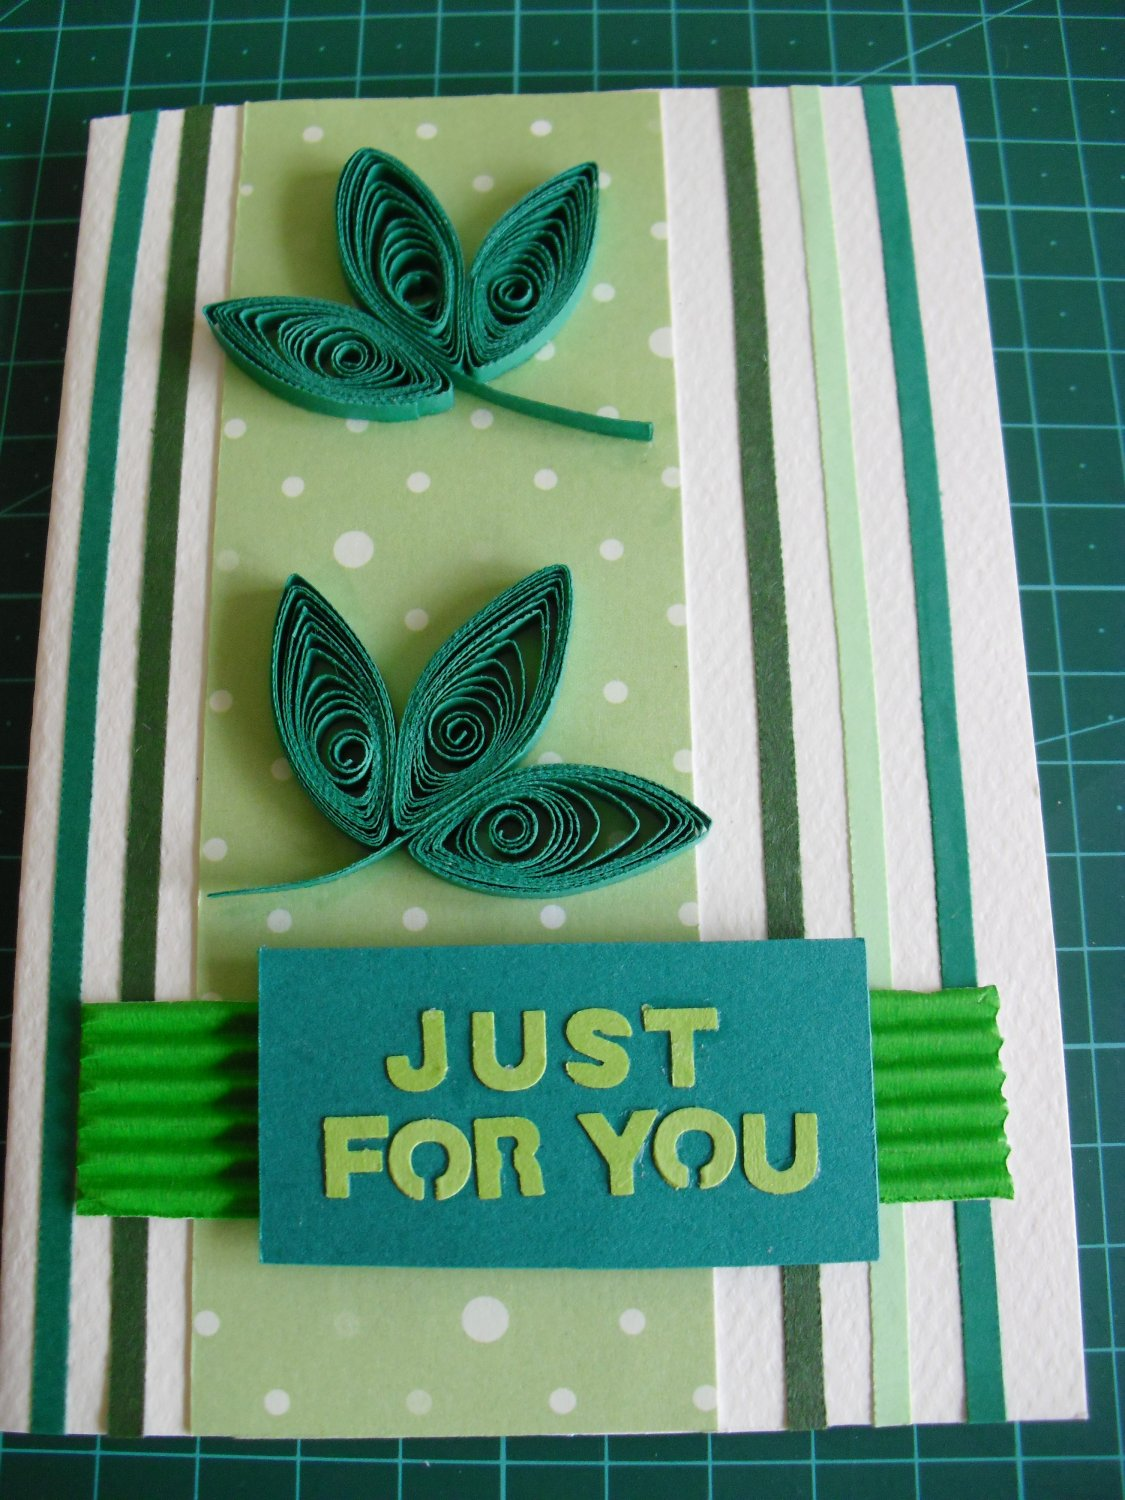 My handmade paper quilled gift card